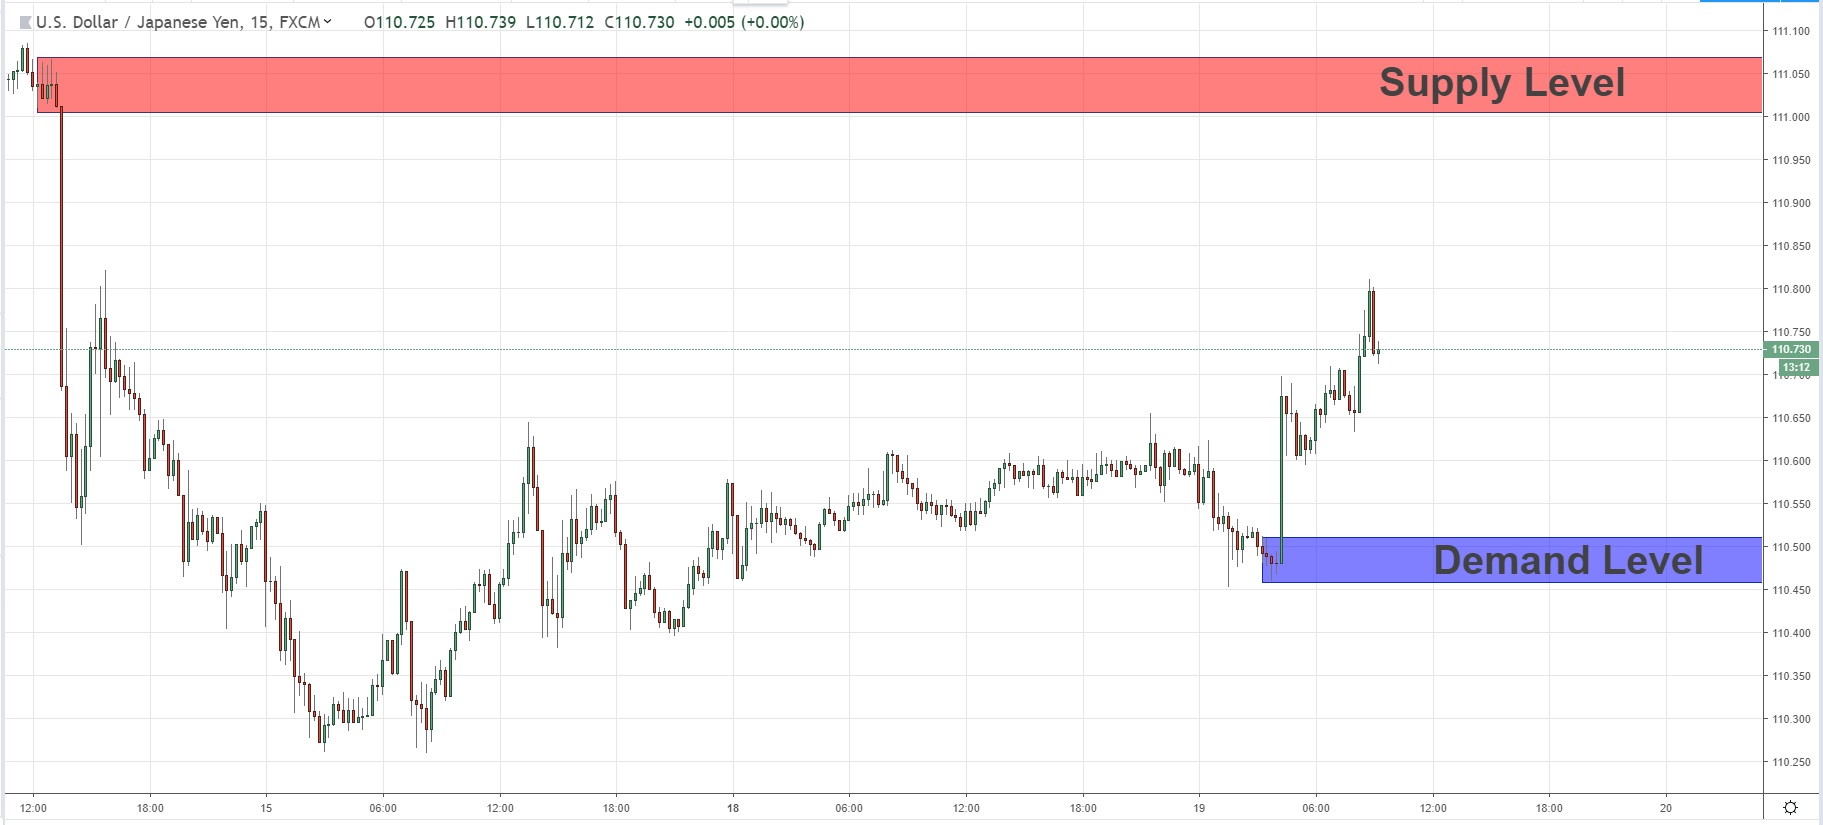 Short Term Key Levels For USDJPY 19/02/2019